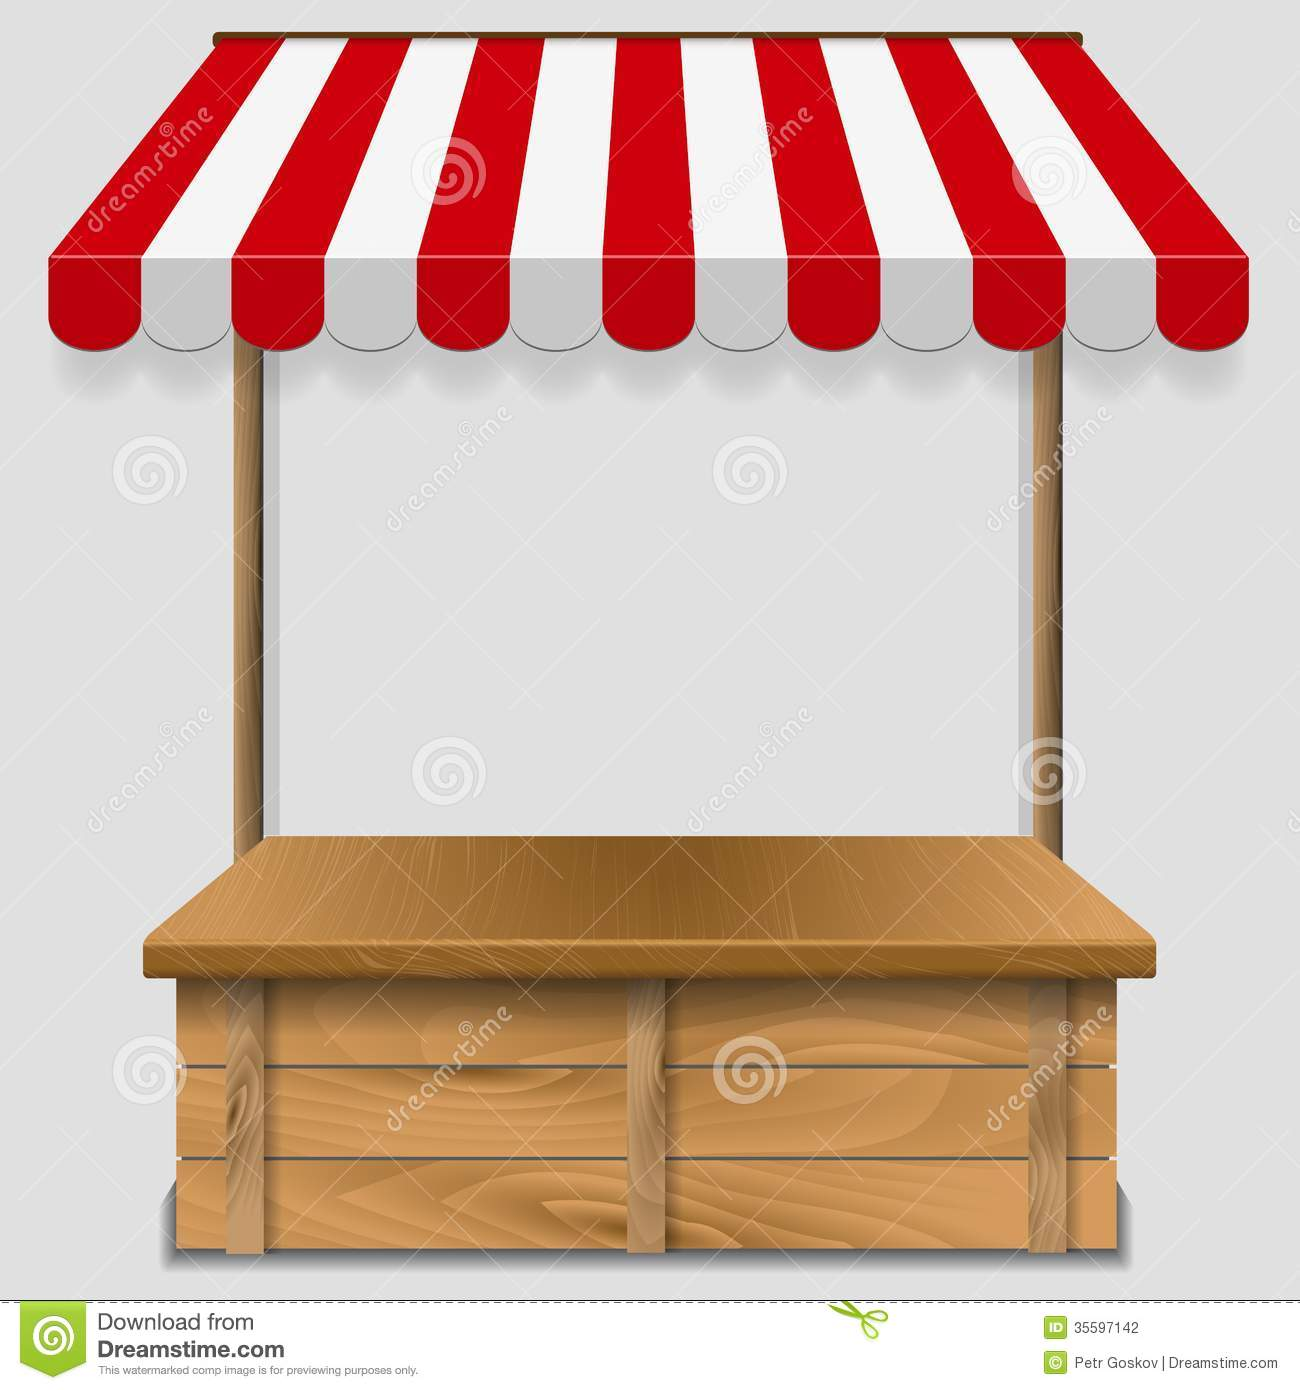 Store Window With Striped Awning Stock Vector - Image ...